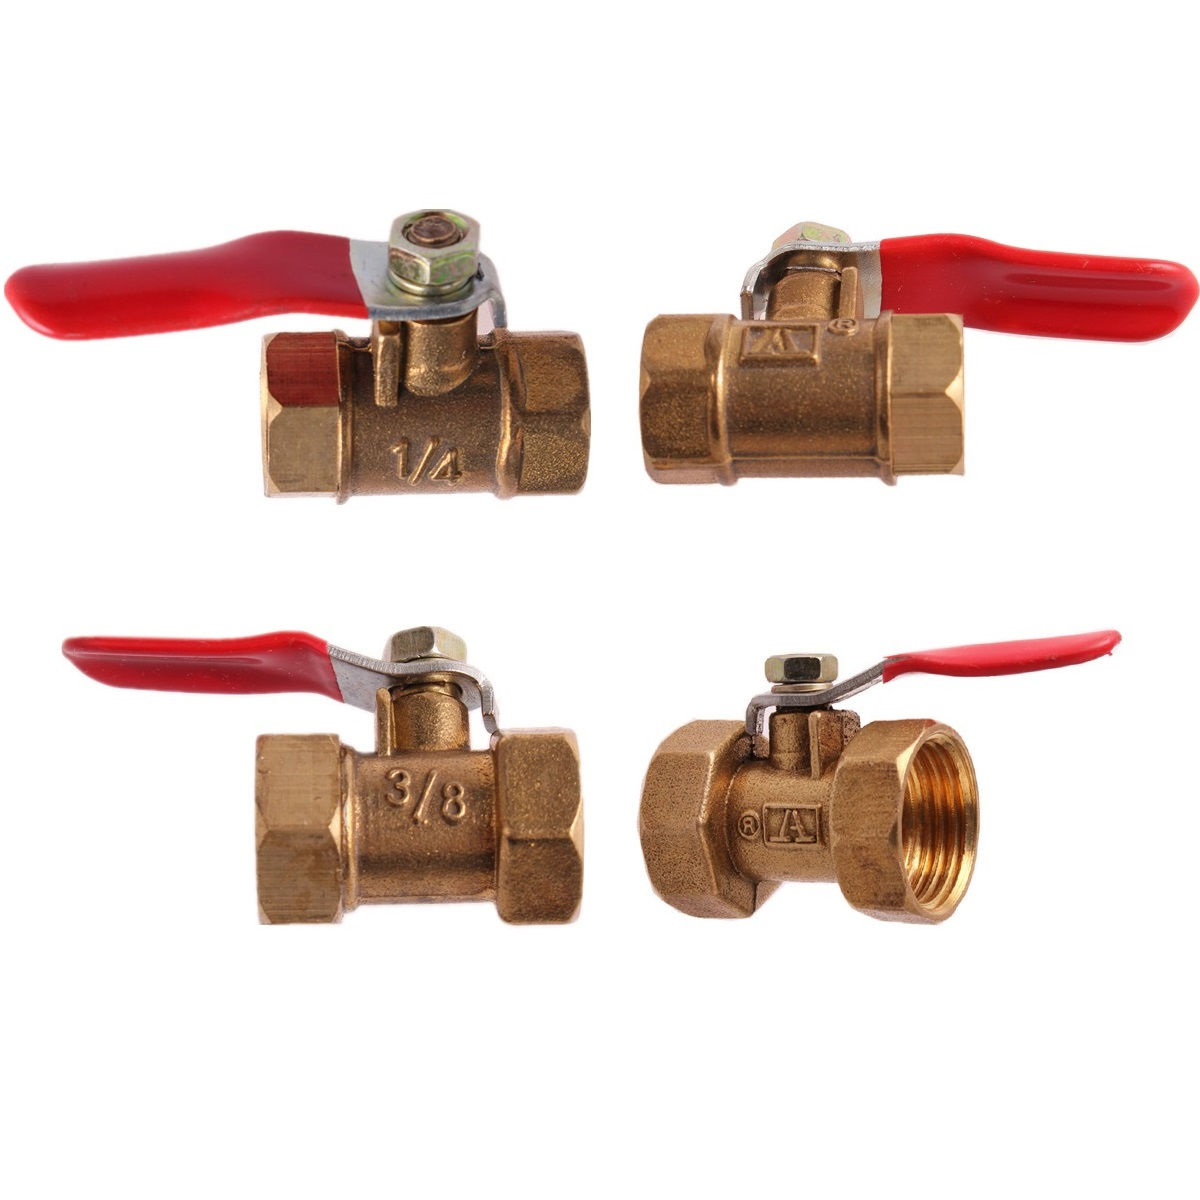 "Brass Ball Valve 1/8"" 1/4"" 3/8"" 1/2"" BSP Female Thread With Red Lever Handle Connector Joint Copper Pipe Fitting Coupler Adapter"